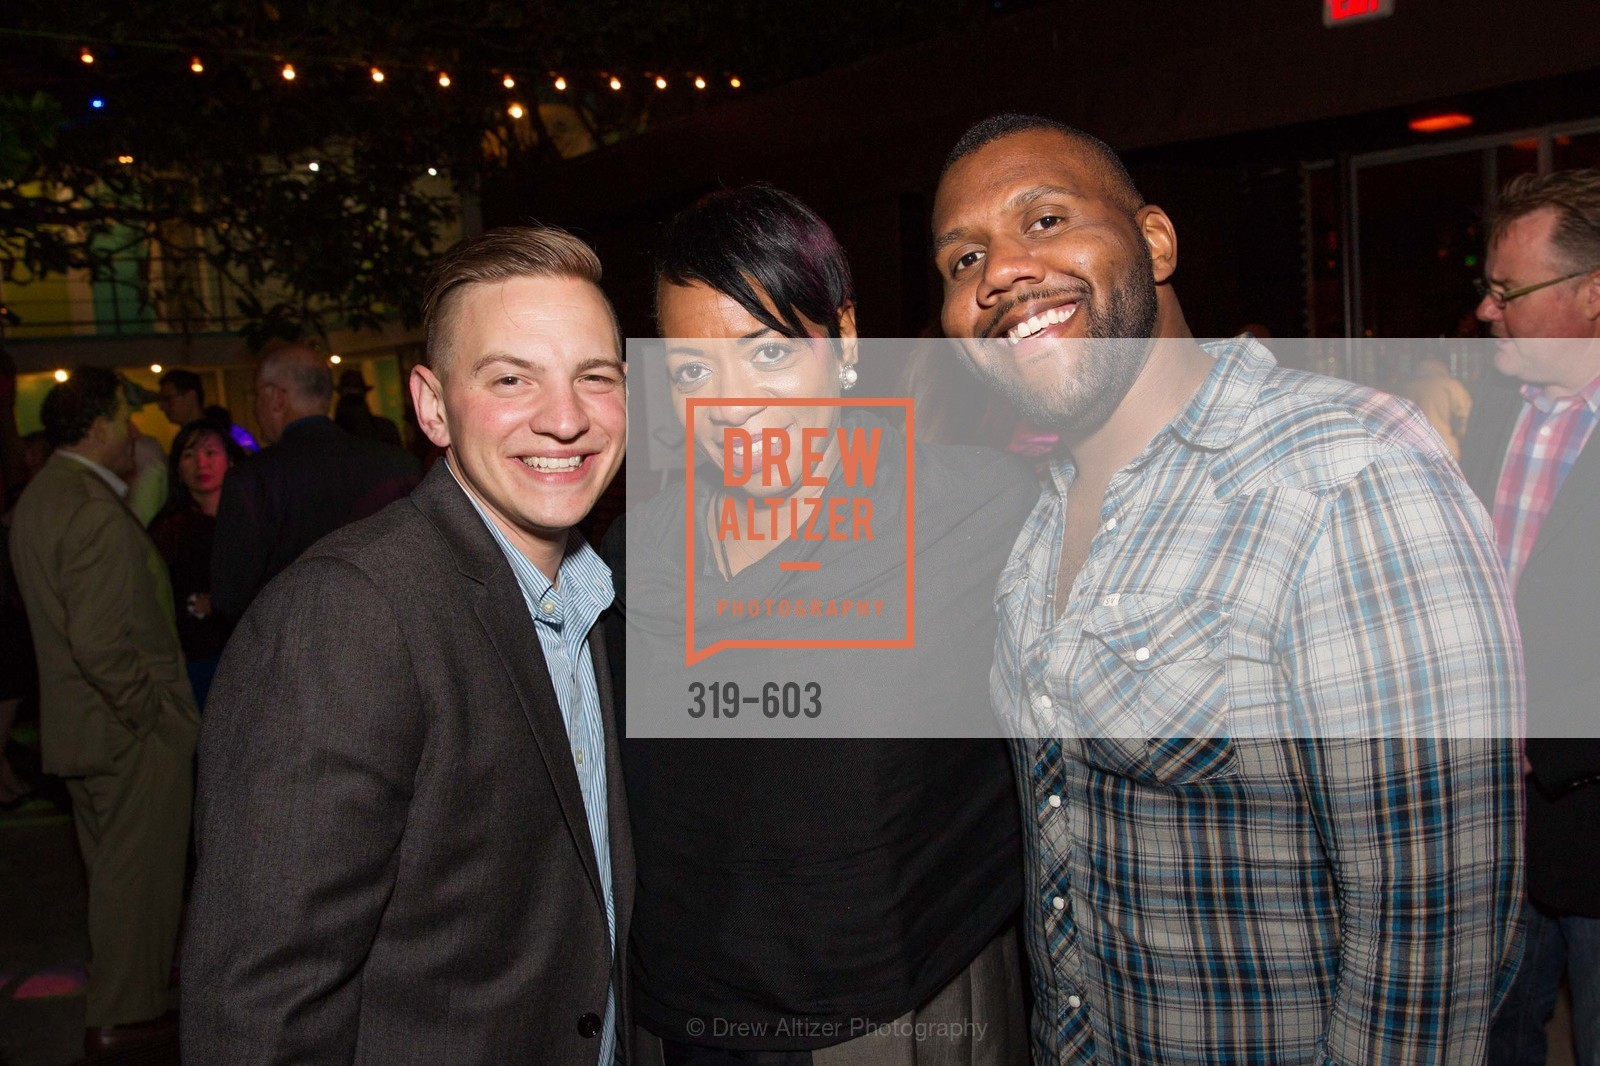 Dan Kreiter, Cheryl Addleman, Brandon Clements, 22nd Annual TNDC CELEBRITY POOL TOSS, US, October 9th, 2014,Drew Altizer, Drew Altizer Photography, full-service agency, private events, San Francisco photographer, photographer california